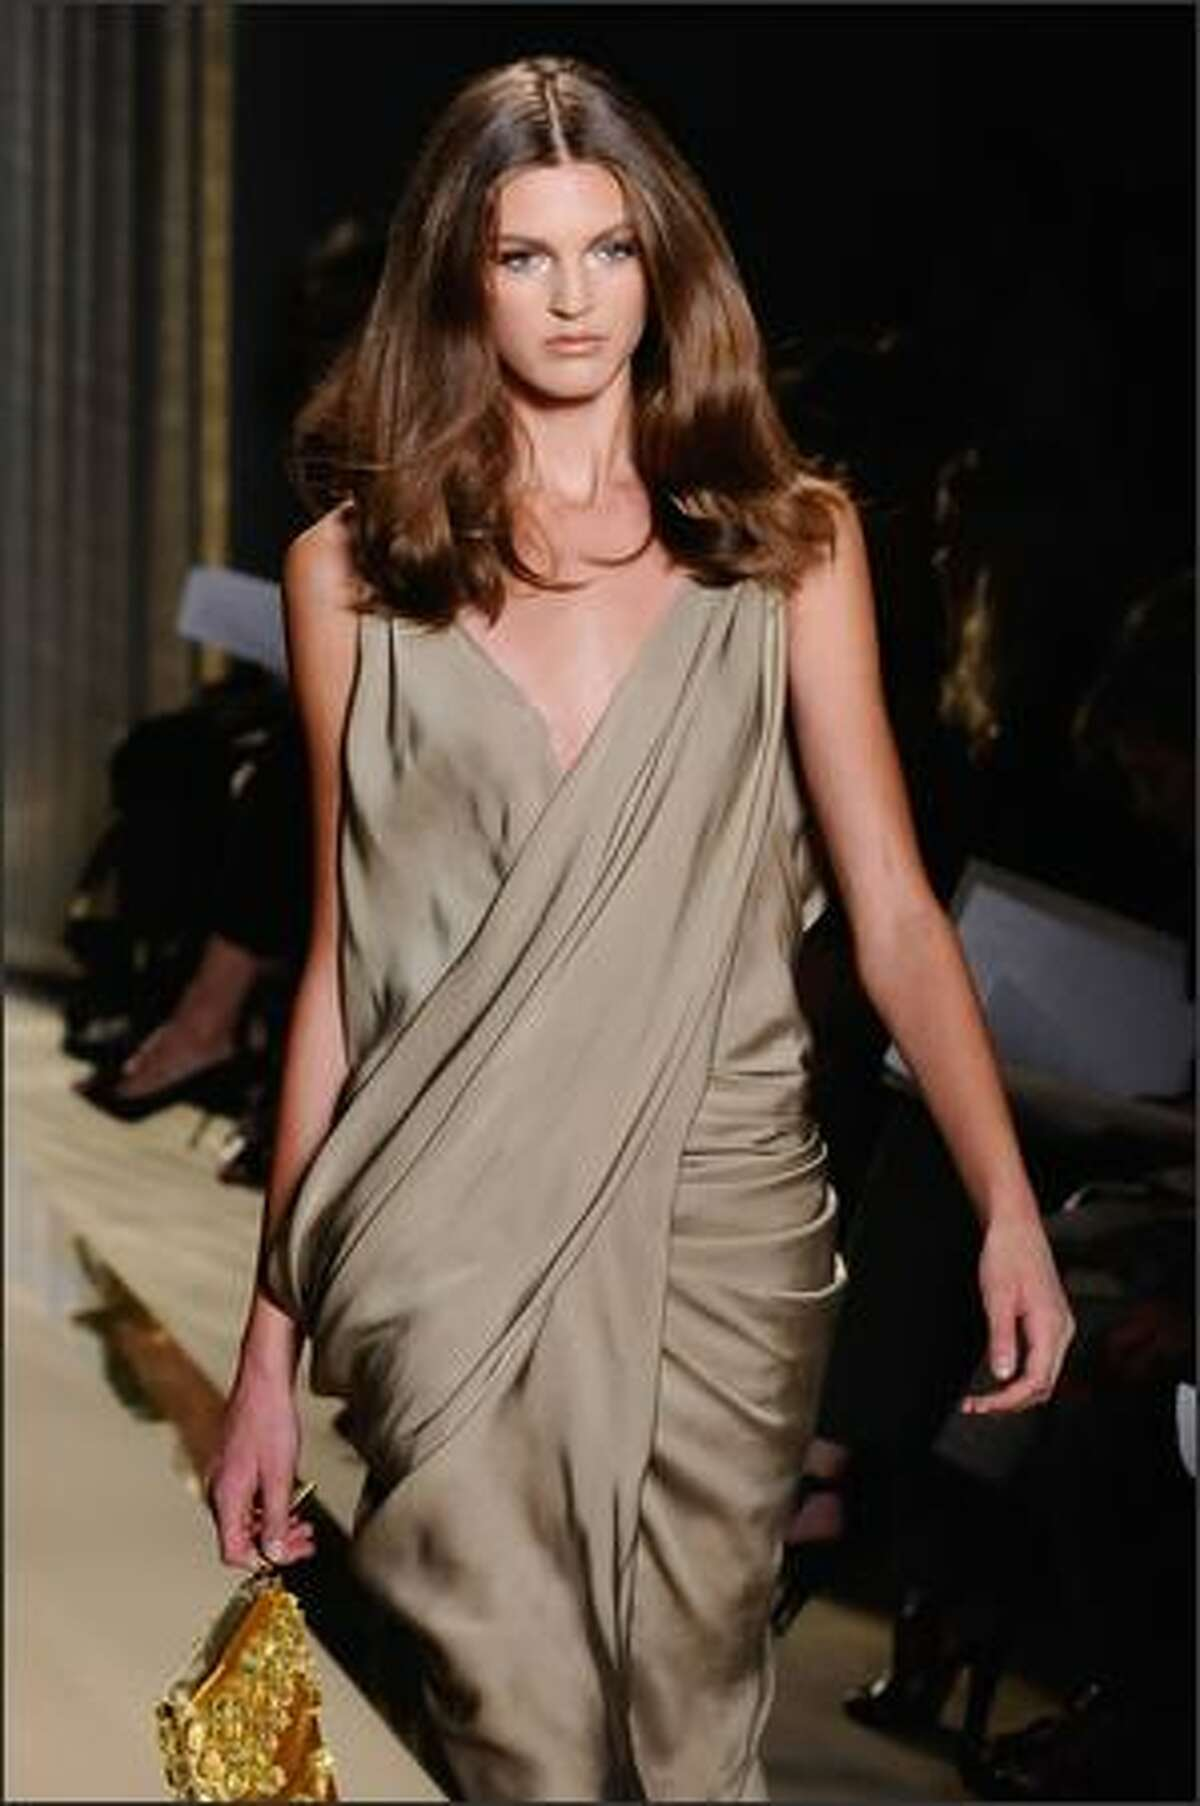 A model walks the runway at the Donna Karan Collection Spring 2009 fashion show during Mercedes-Benz Fashion Week in New York City.